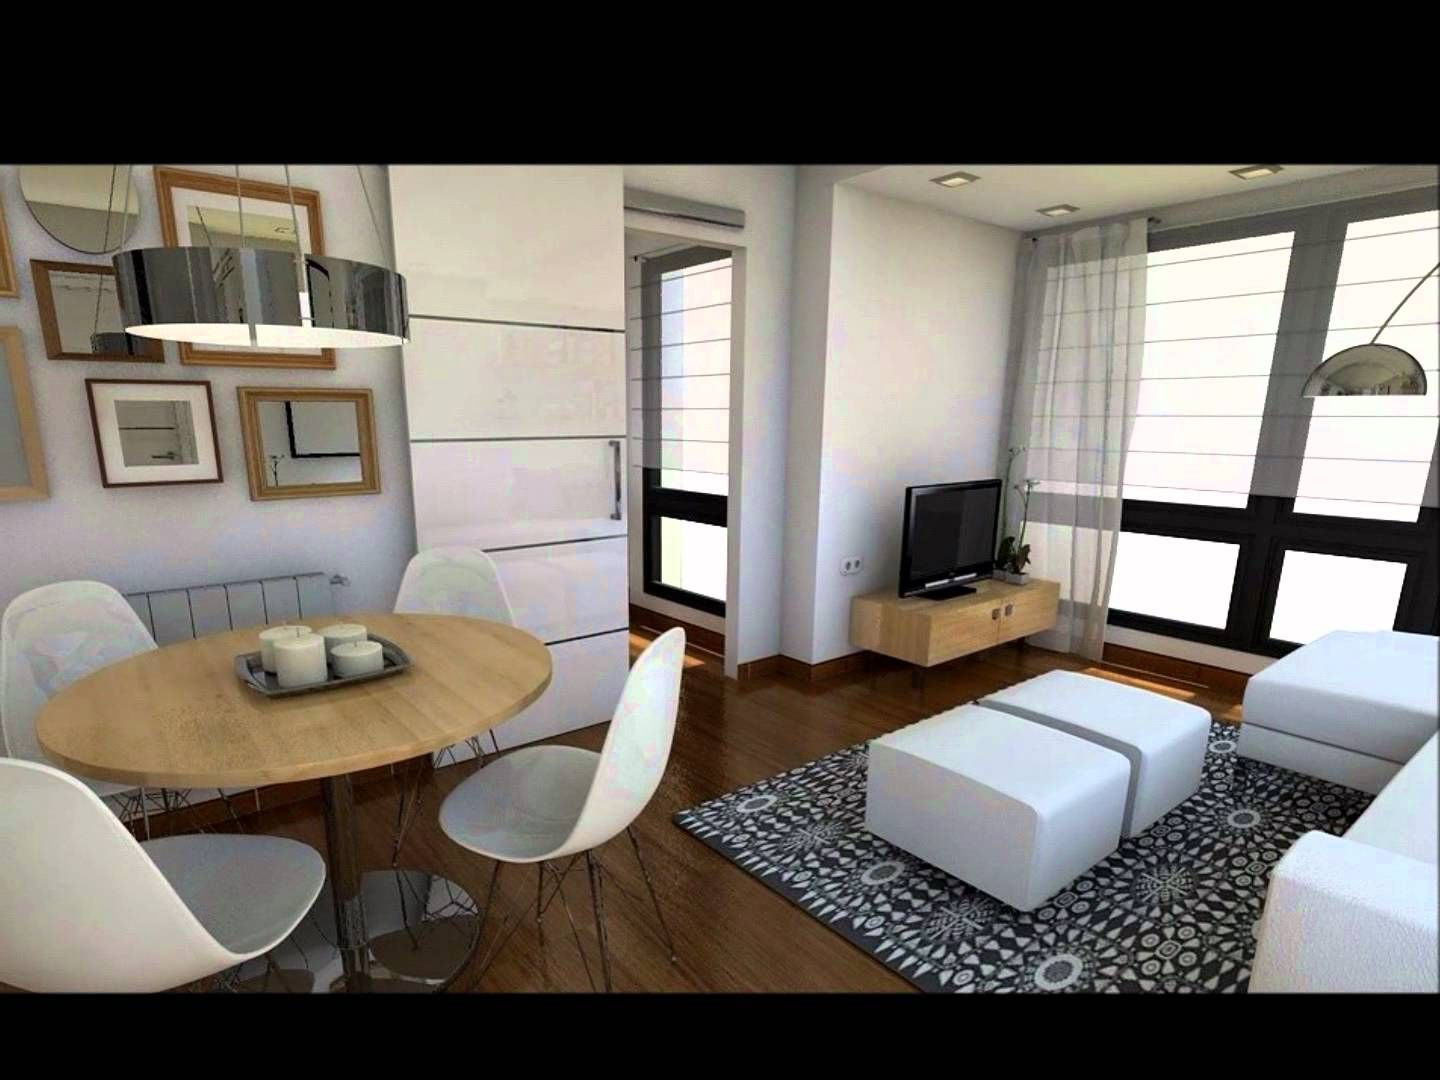 Dise o interior apartamento 40 m2 decoracion dise o for Diseno de interiores espacios pequenos